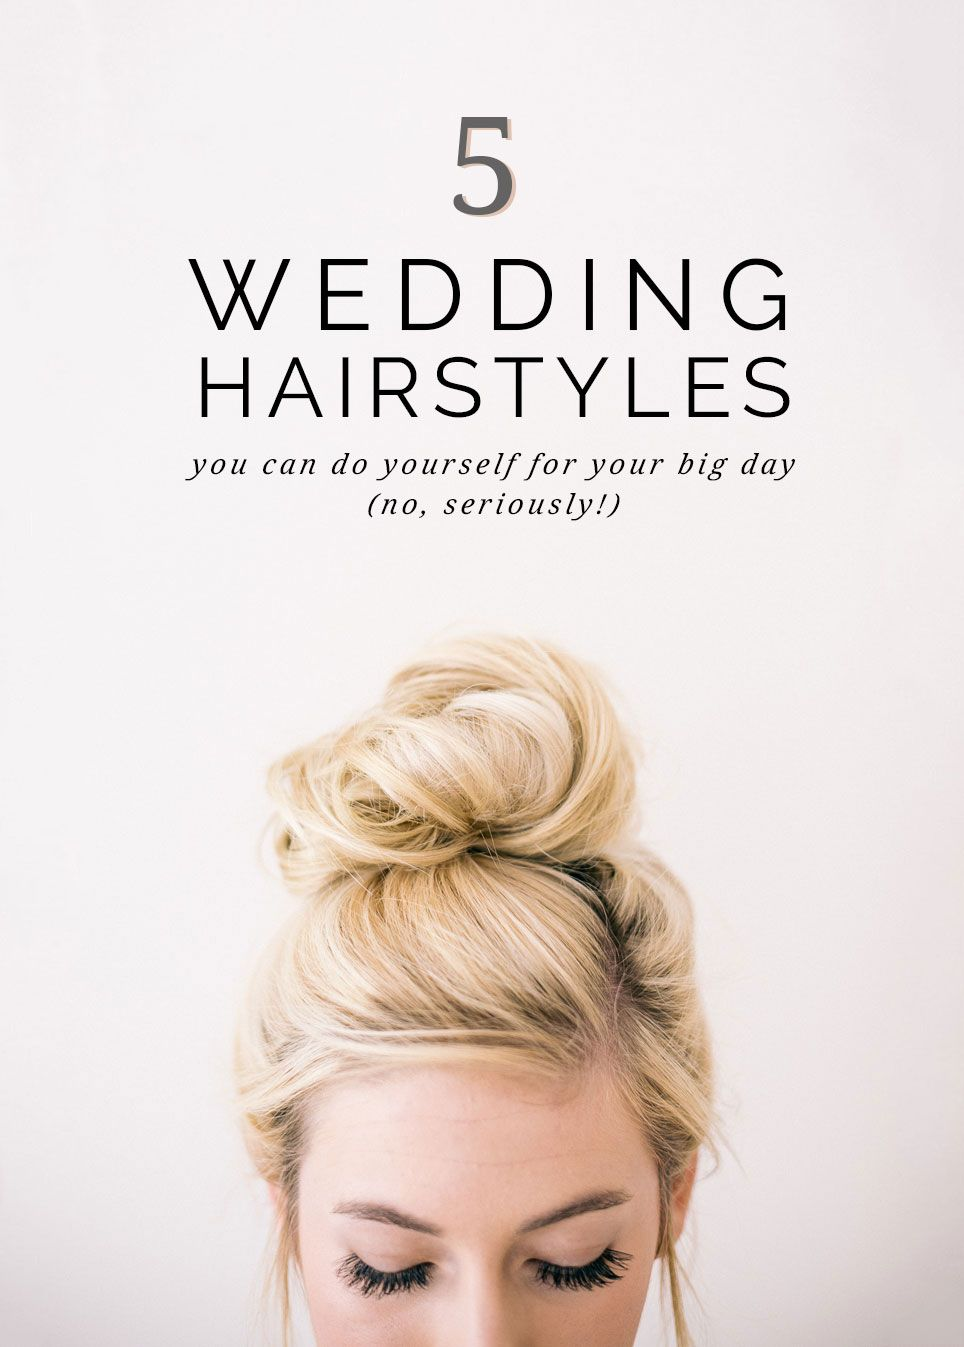 5 Super Easy Wedding Hairstyles You Can Do Yourself Pipkin Paper Company Wedding Hairstyles Hair Styles Simple Wedding Hairstyles